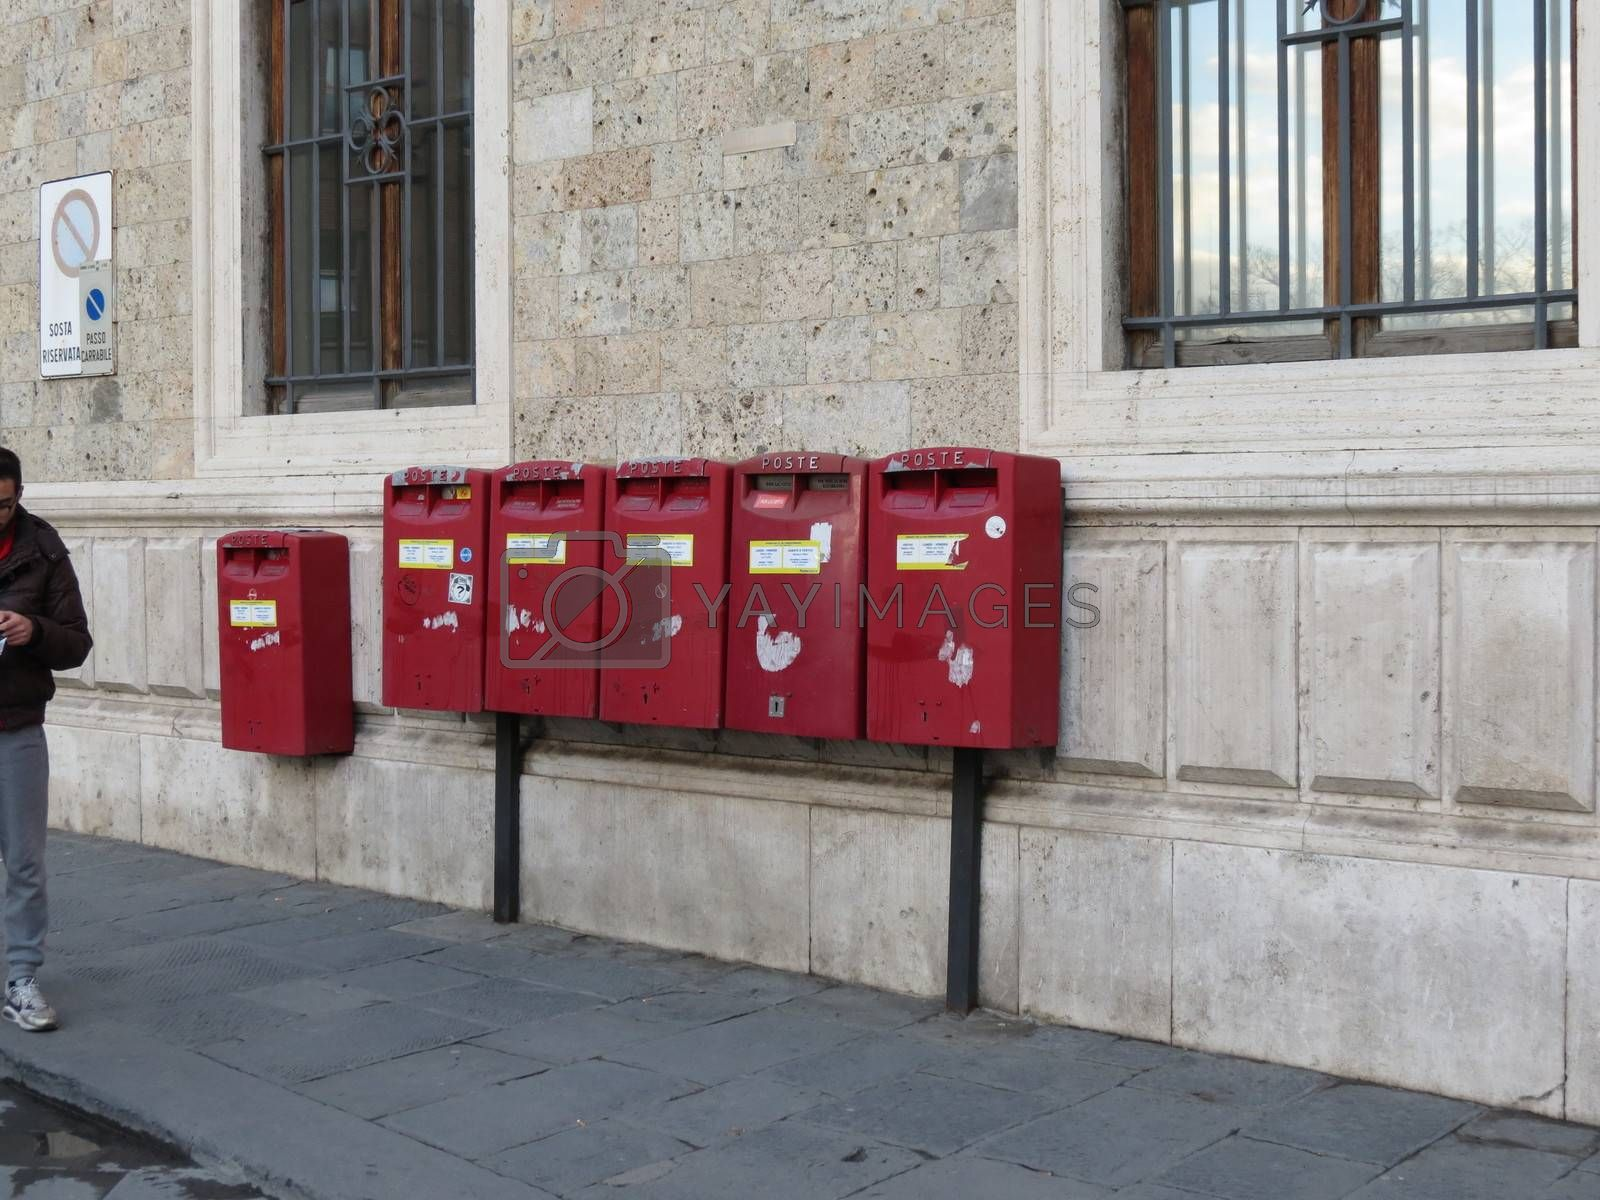 Royalty free image of Mail boxes by paolo77